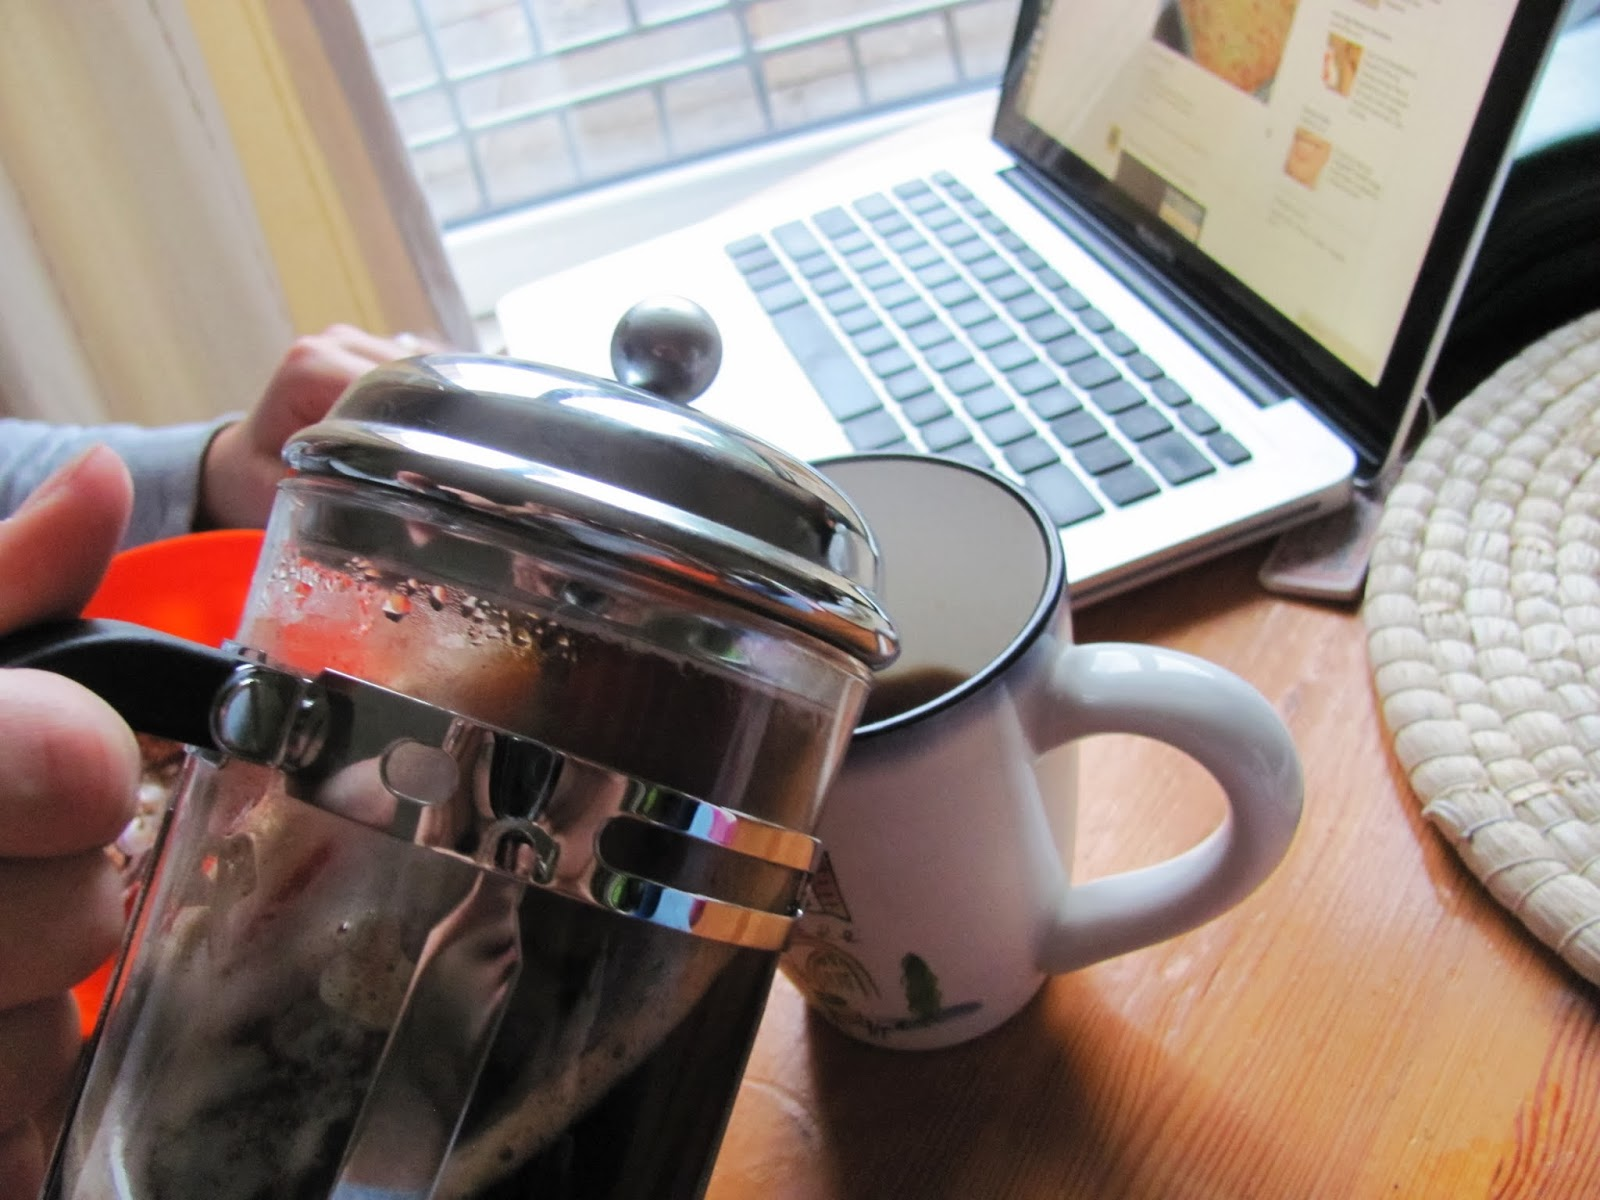 Pouring coffee from the cafetiere French press in Dublin, Ireland